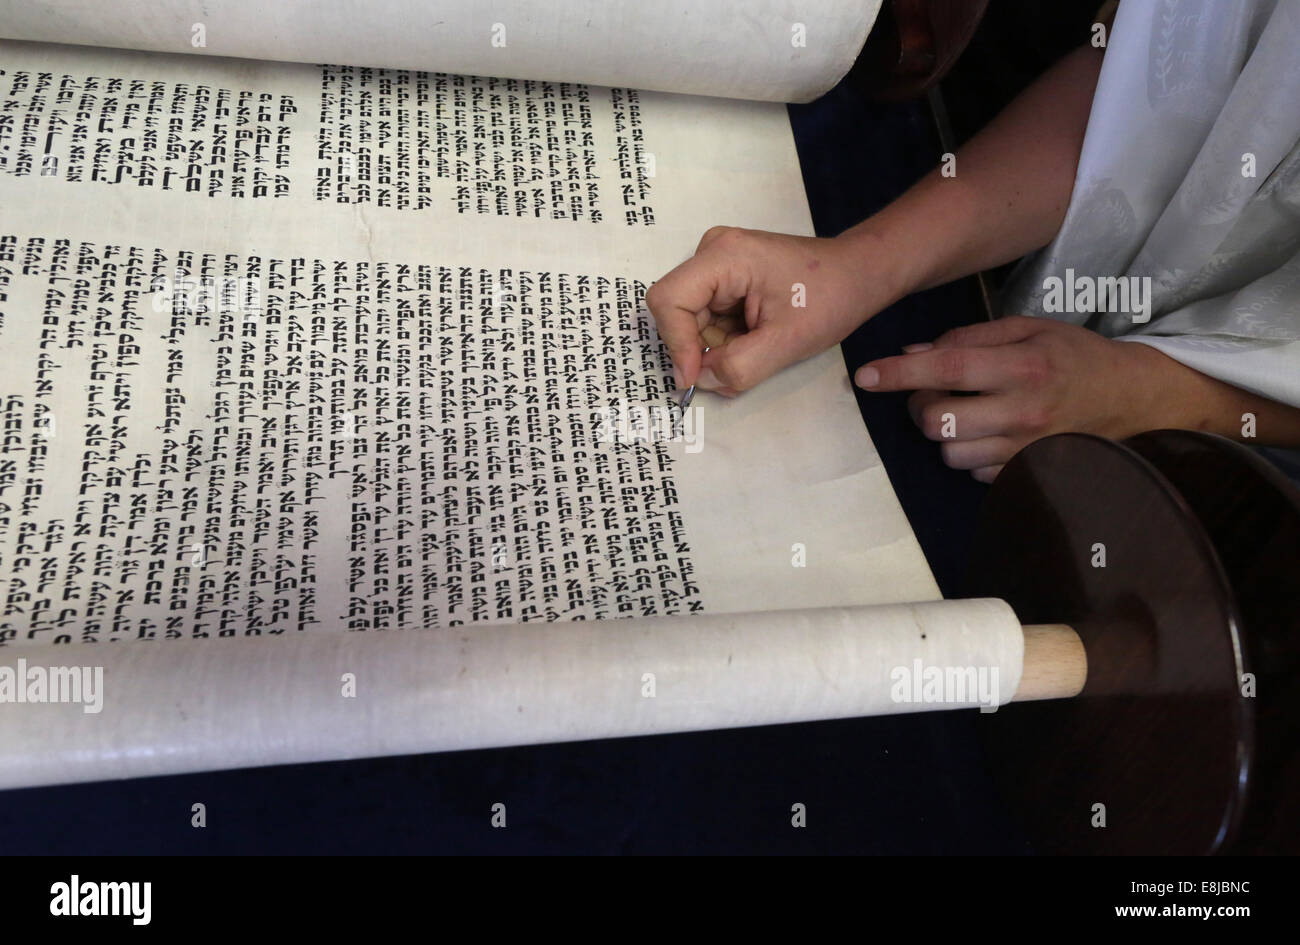 Launch of a new Torah in a synagogue. - Stock Image